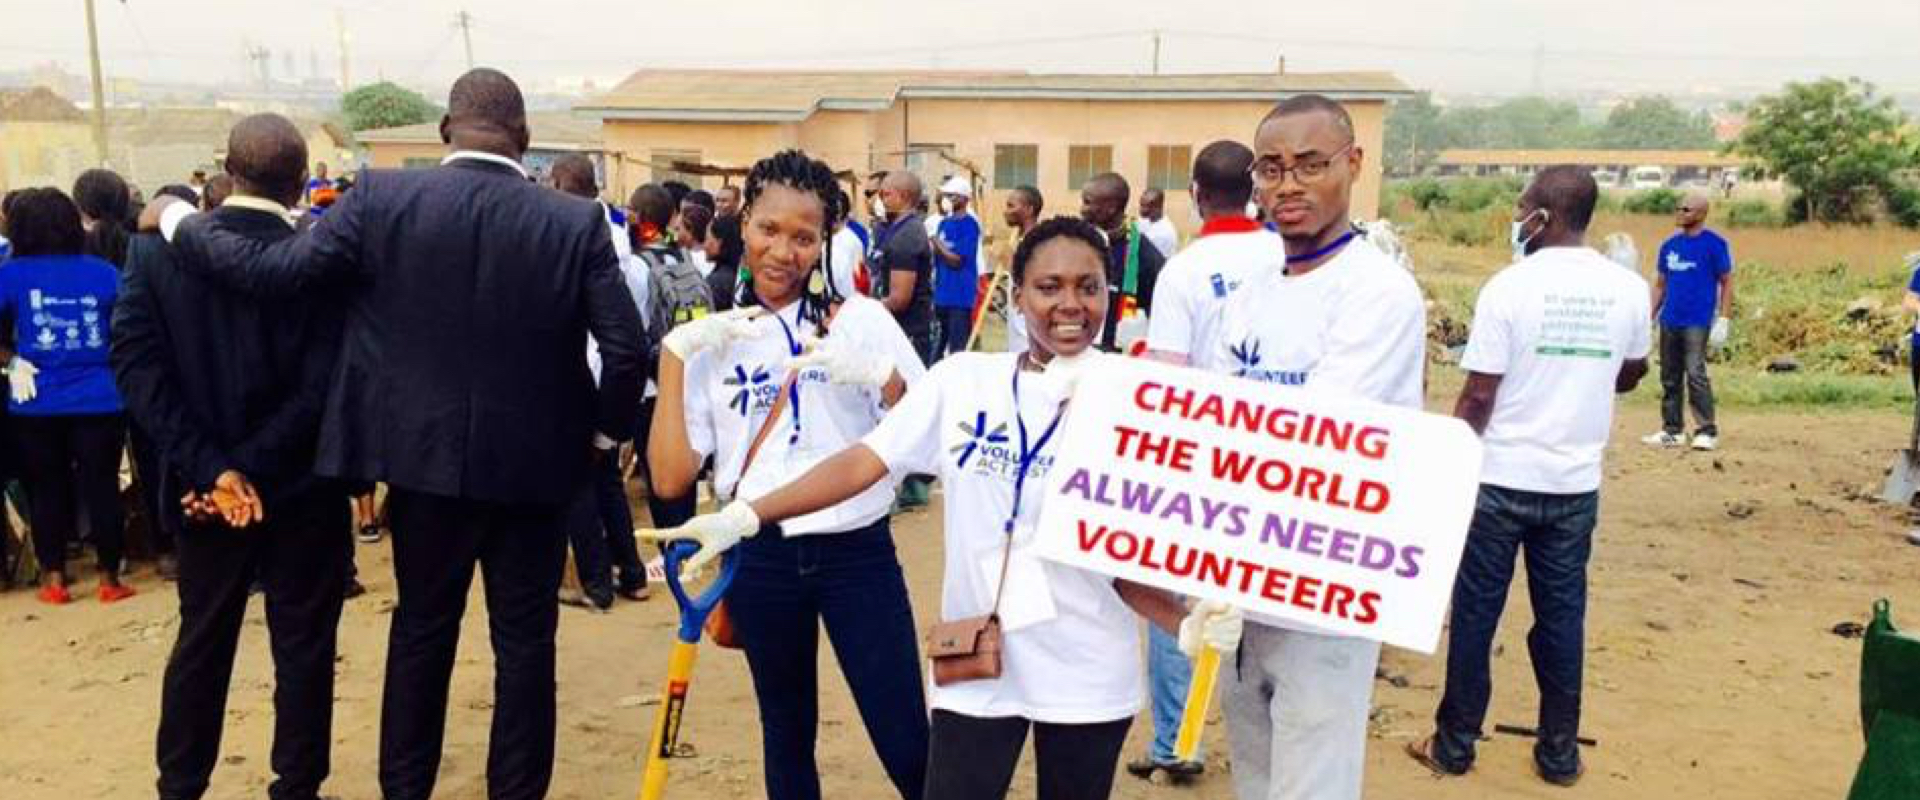 Marly Samuel promoting volunteerism in Accra Ghana